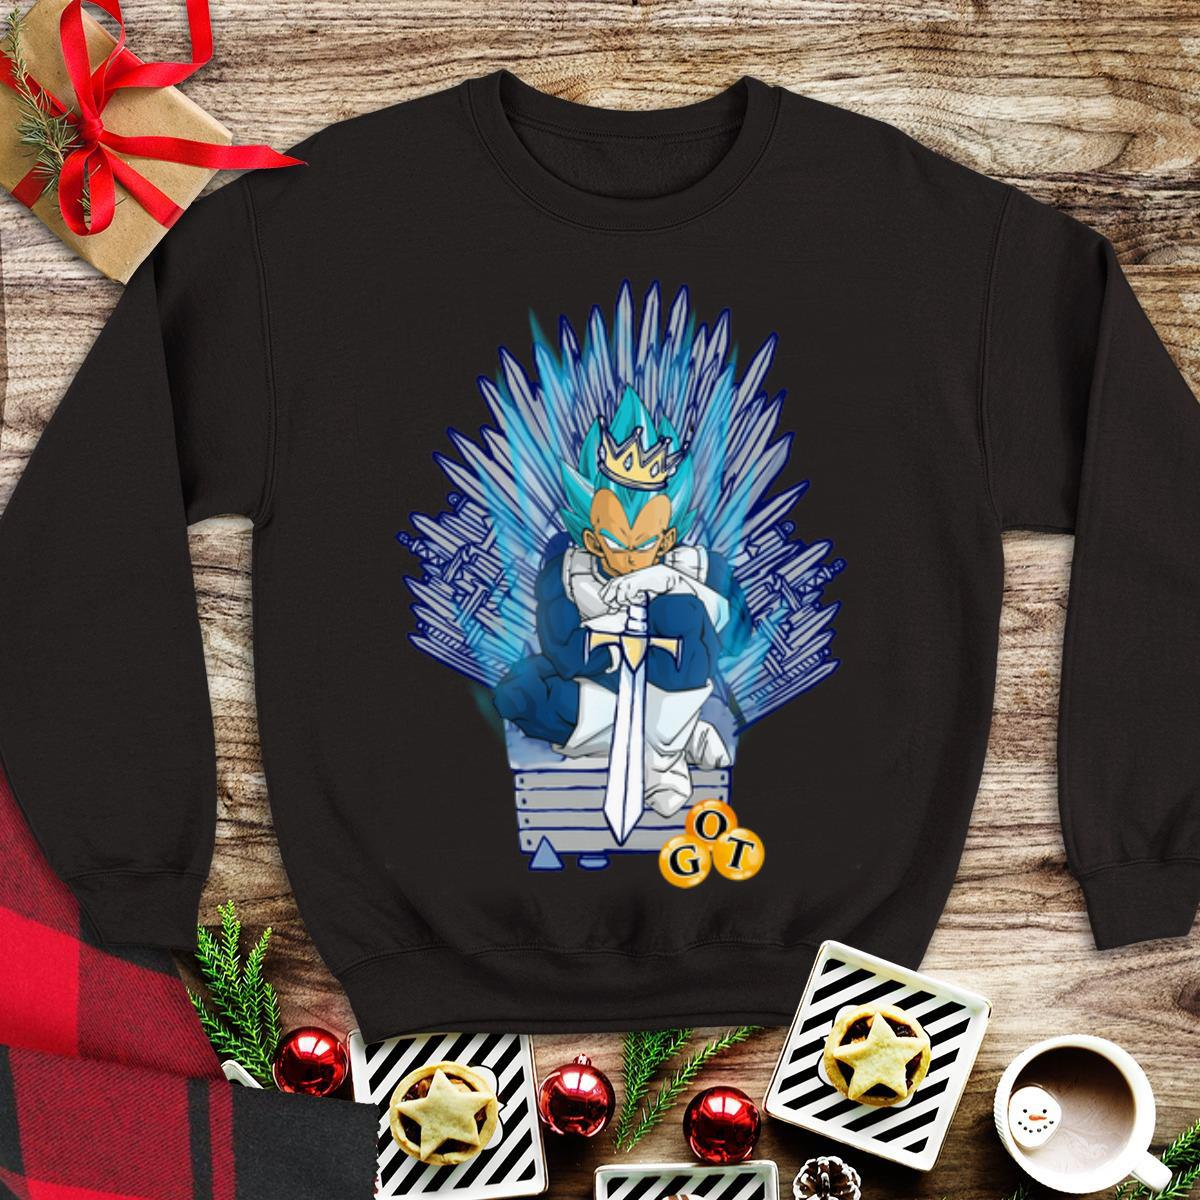 Awesome Game Of Thrones Vegeta Got Shirt 1 1.jpg